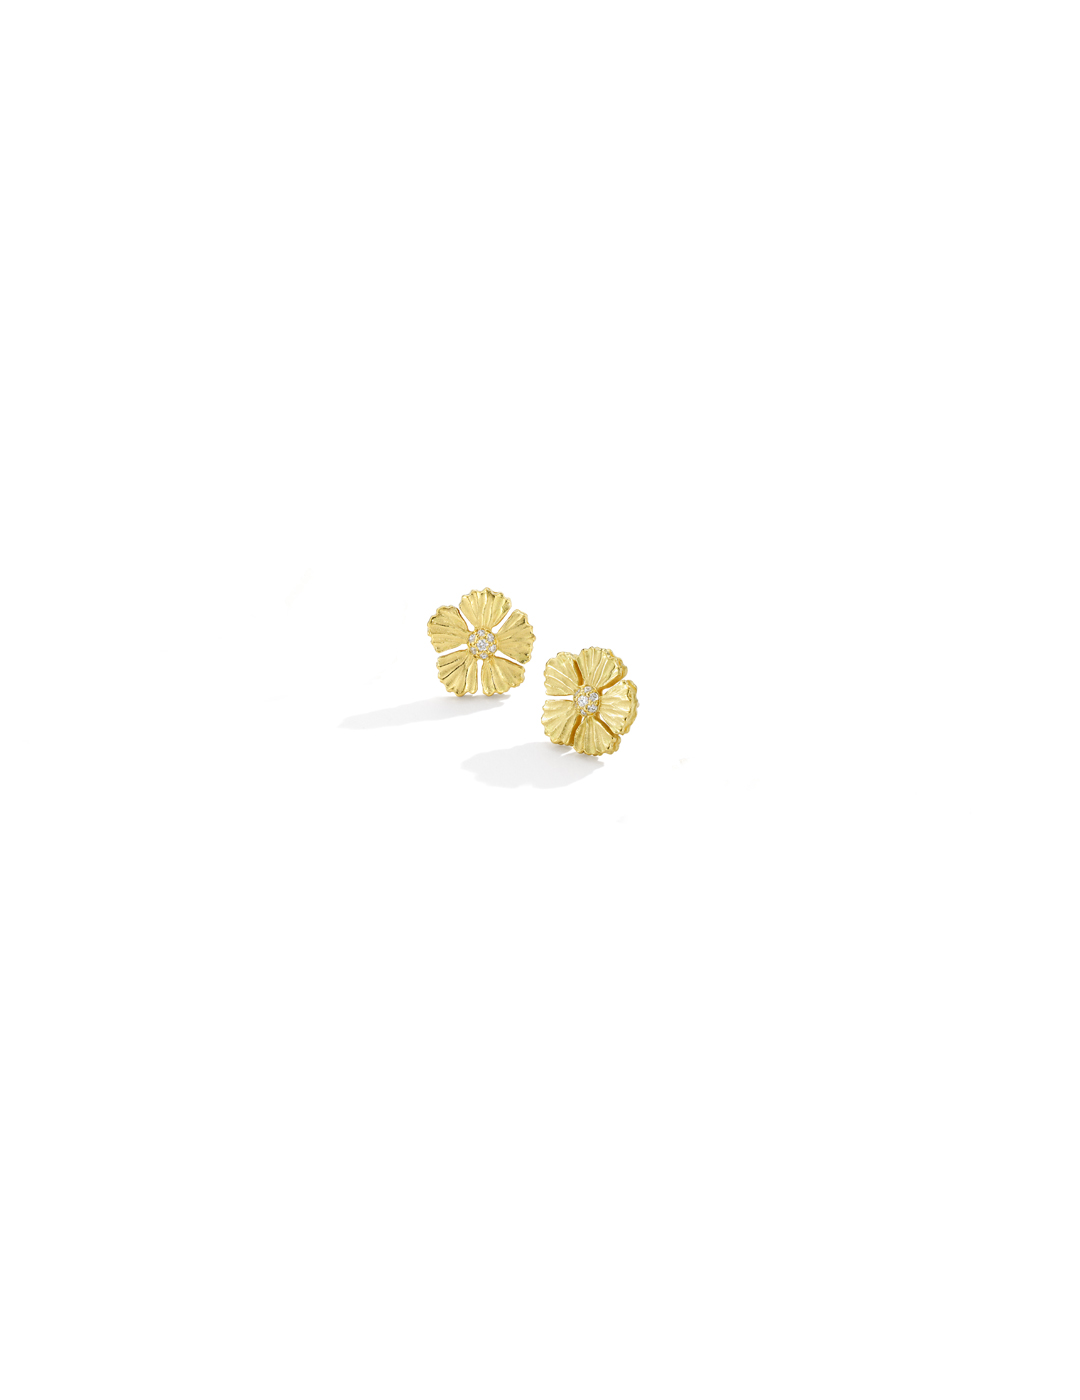 mish_products_earrings_StrawFlwr-Med Diam-Stud-ER-1